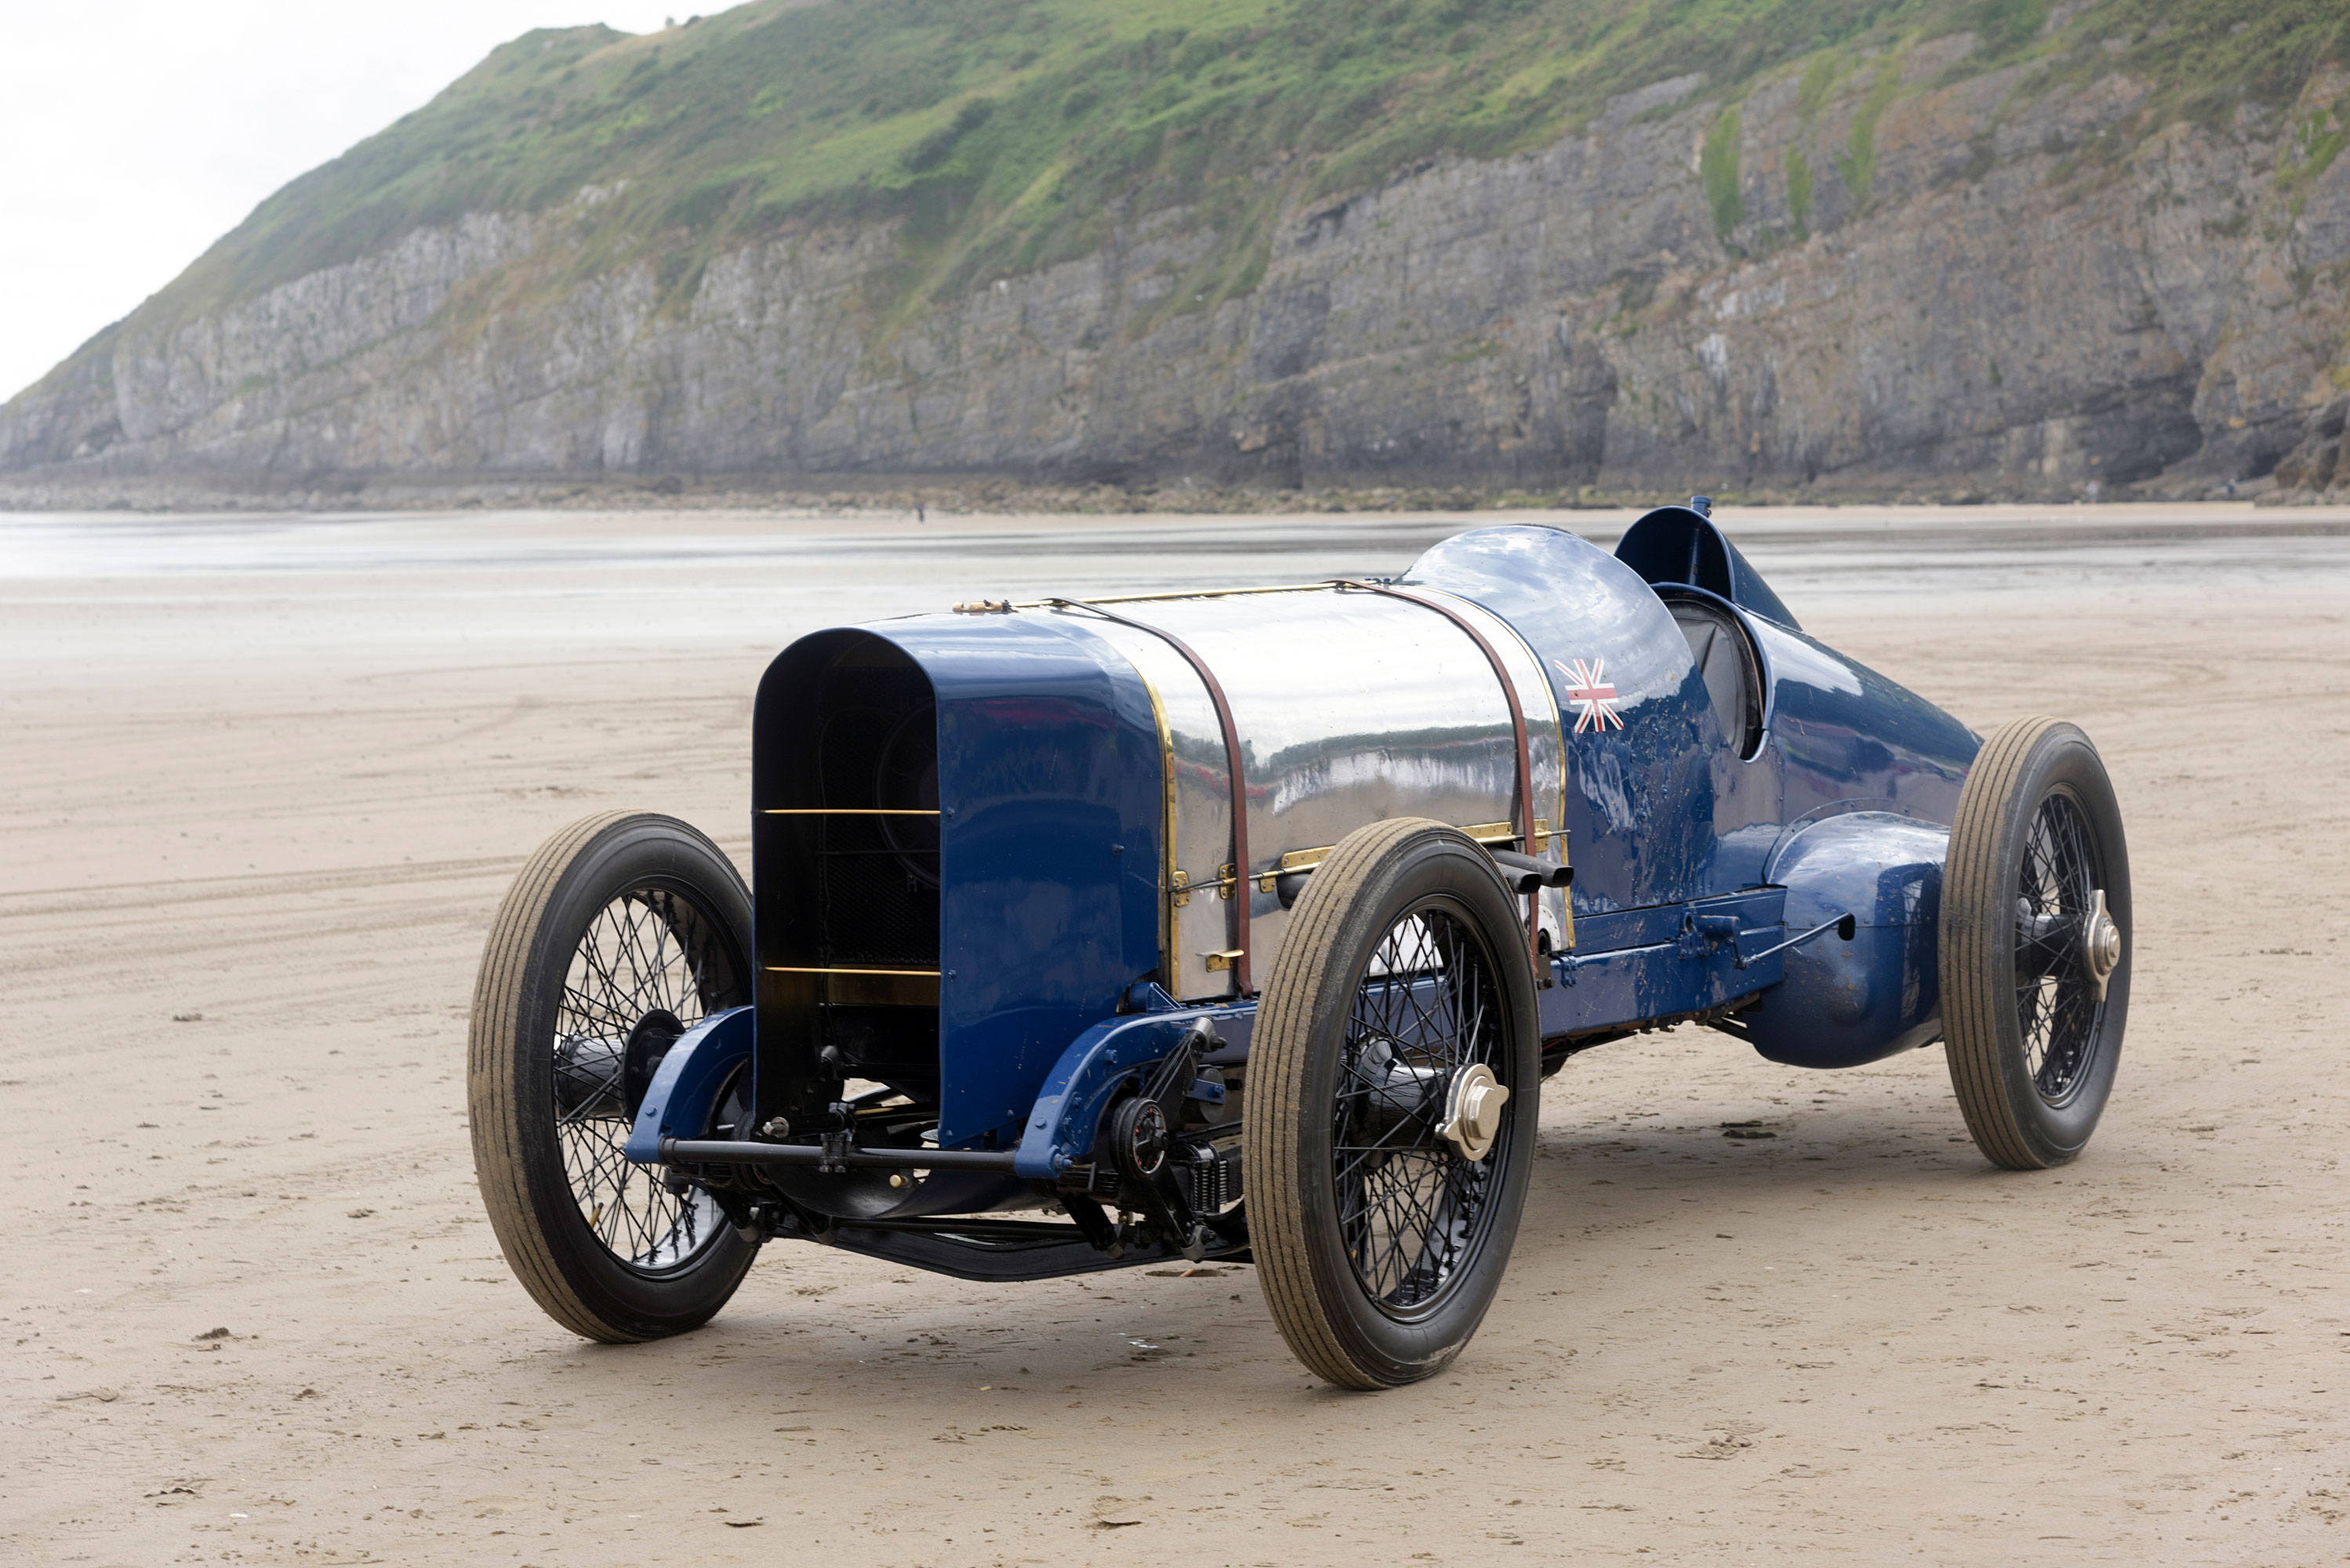 The record-breaking Sunbeam 350hp at Pendine Sands in 2015